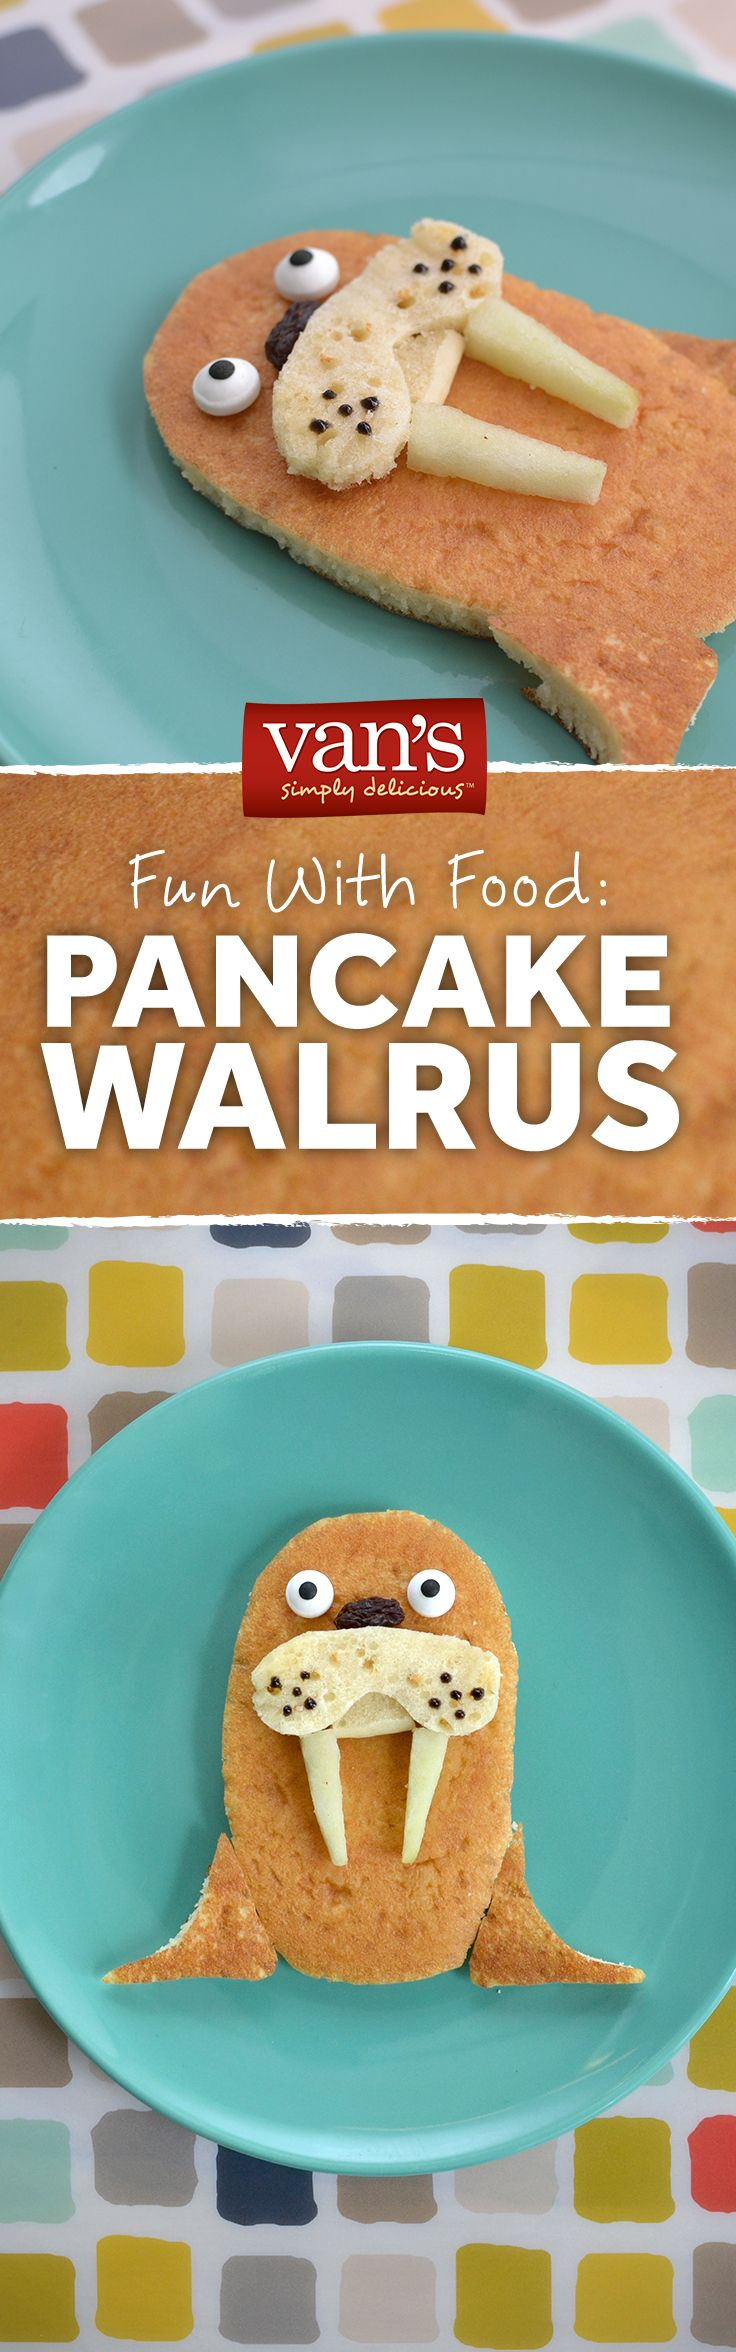 Pack a little fun into their morning routine! Dish up some walrus pancakes to put a smile on their faces.